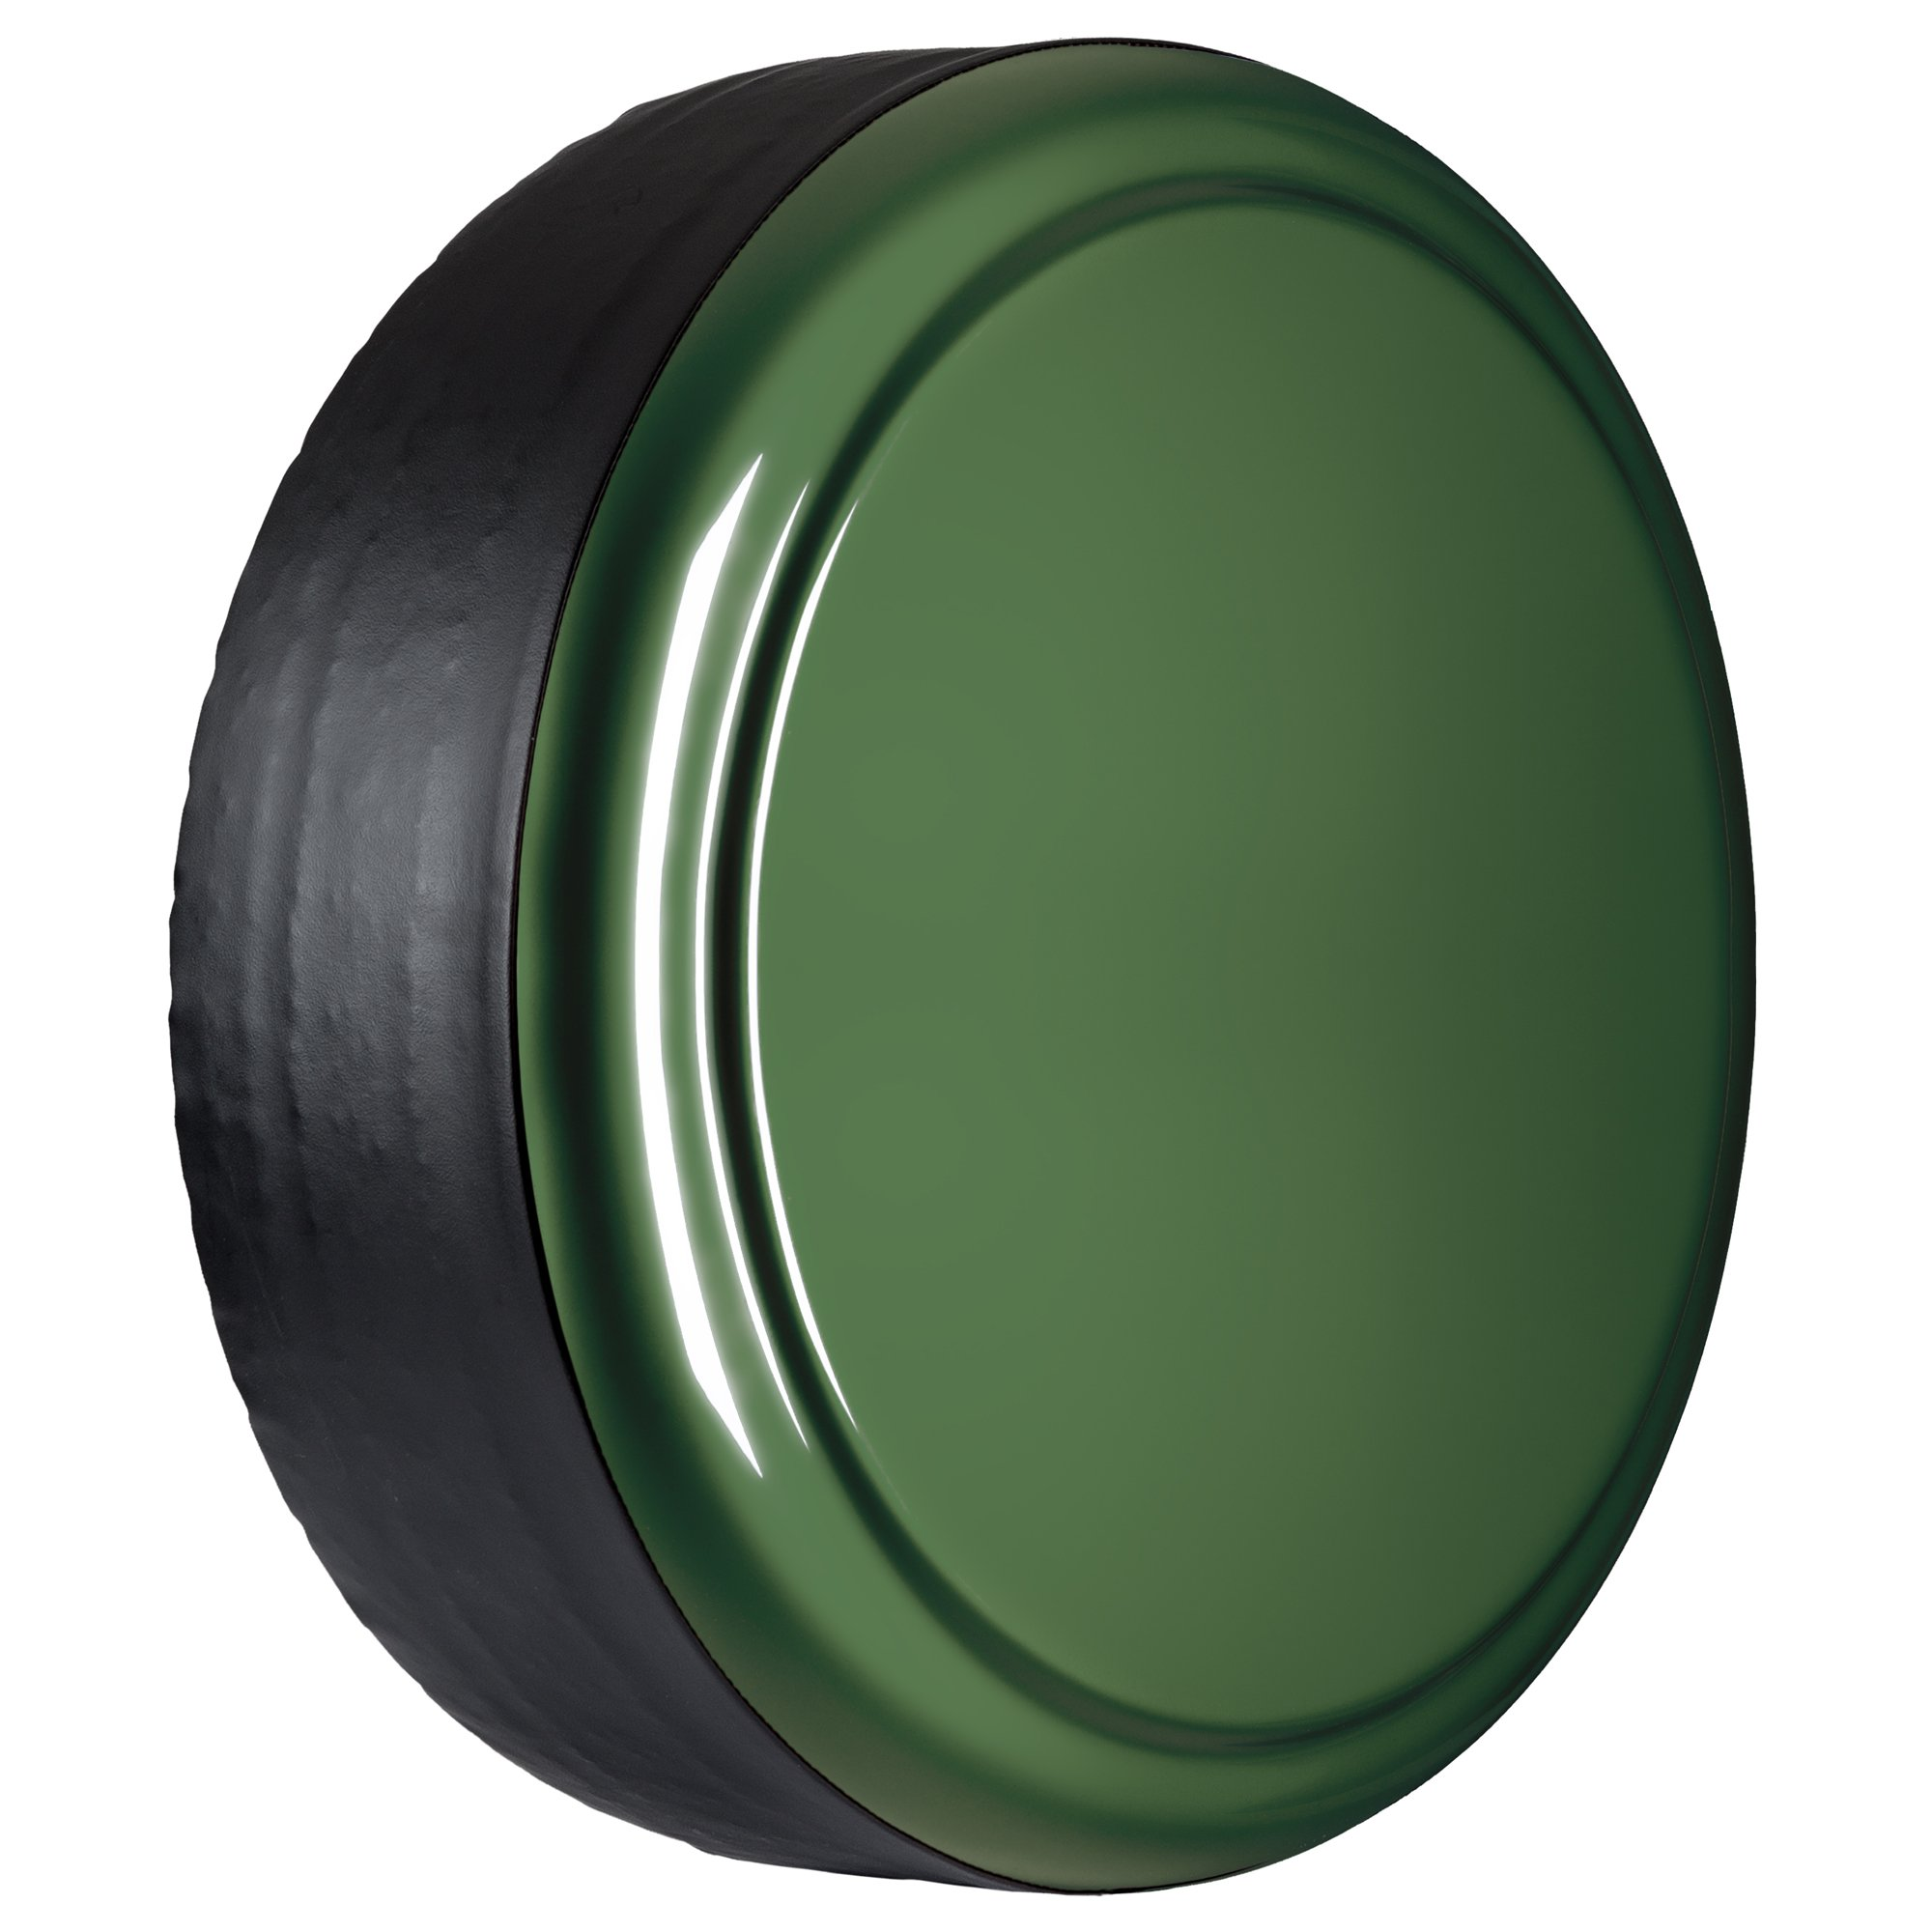 Jeep Wrangler JK - 29'' Color Matched MasterSeries Hard Tire Cover - Sarge Green by Boomerang (Image #2)